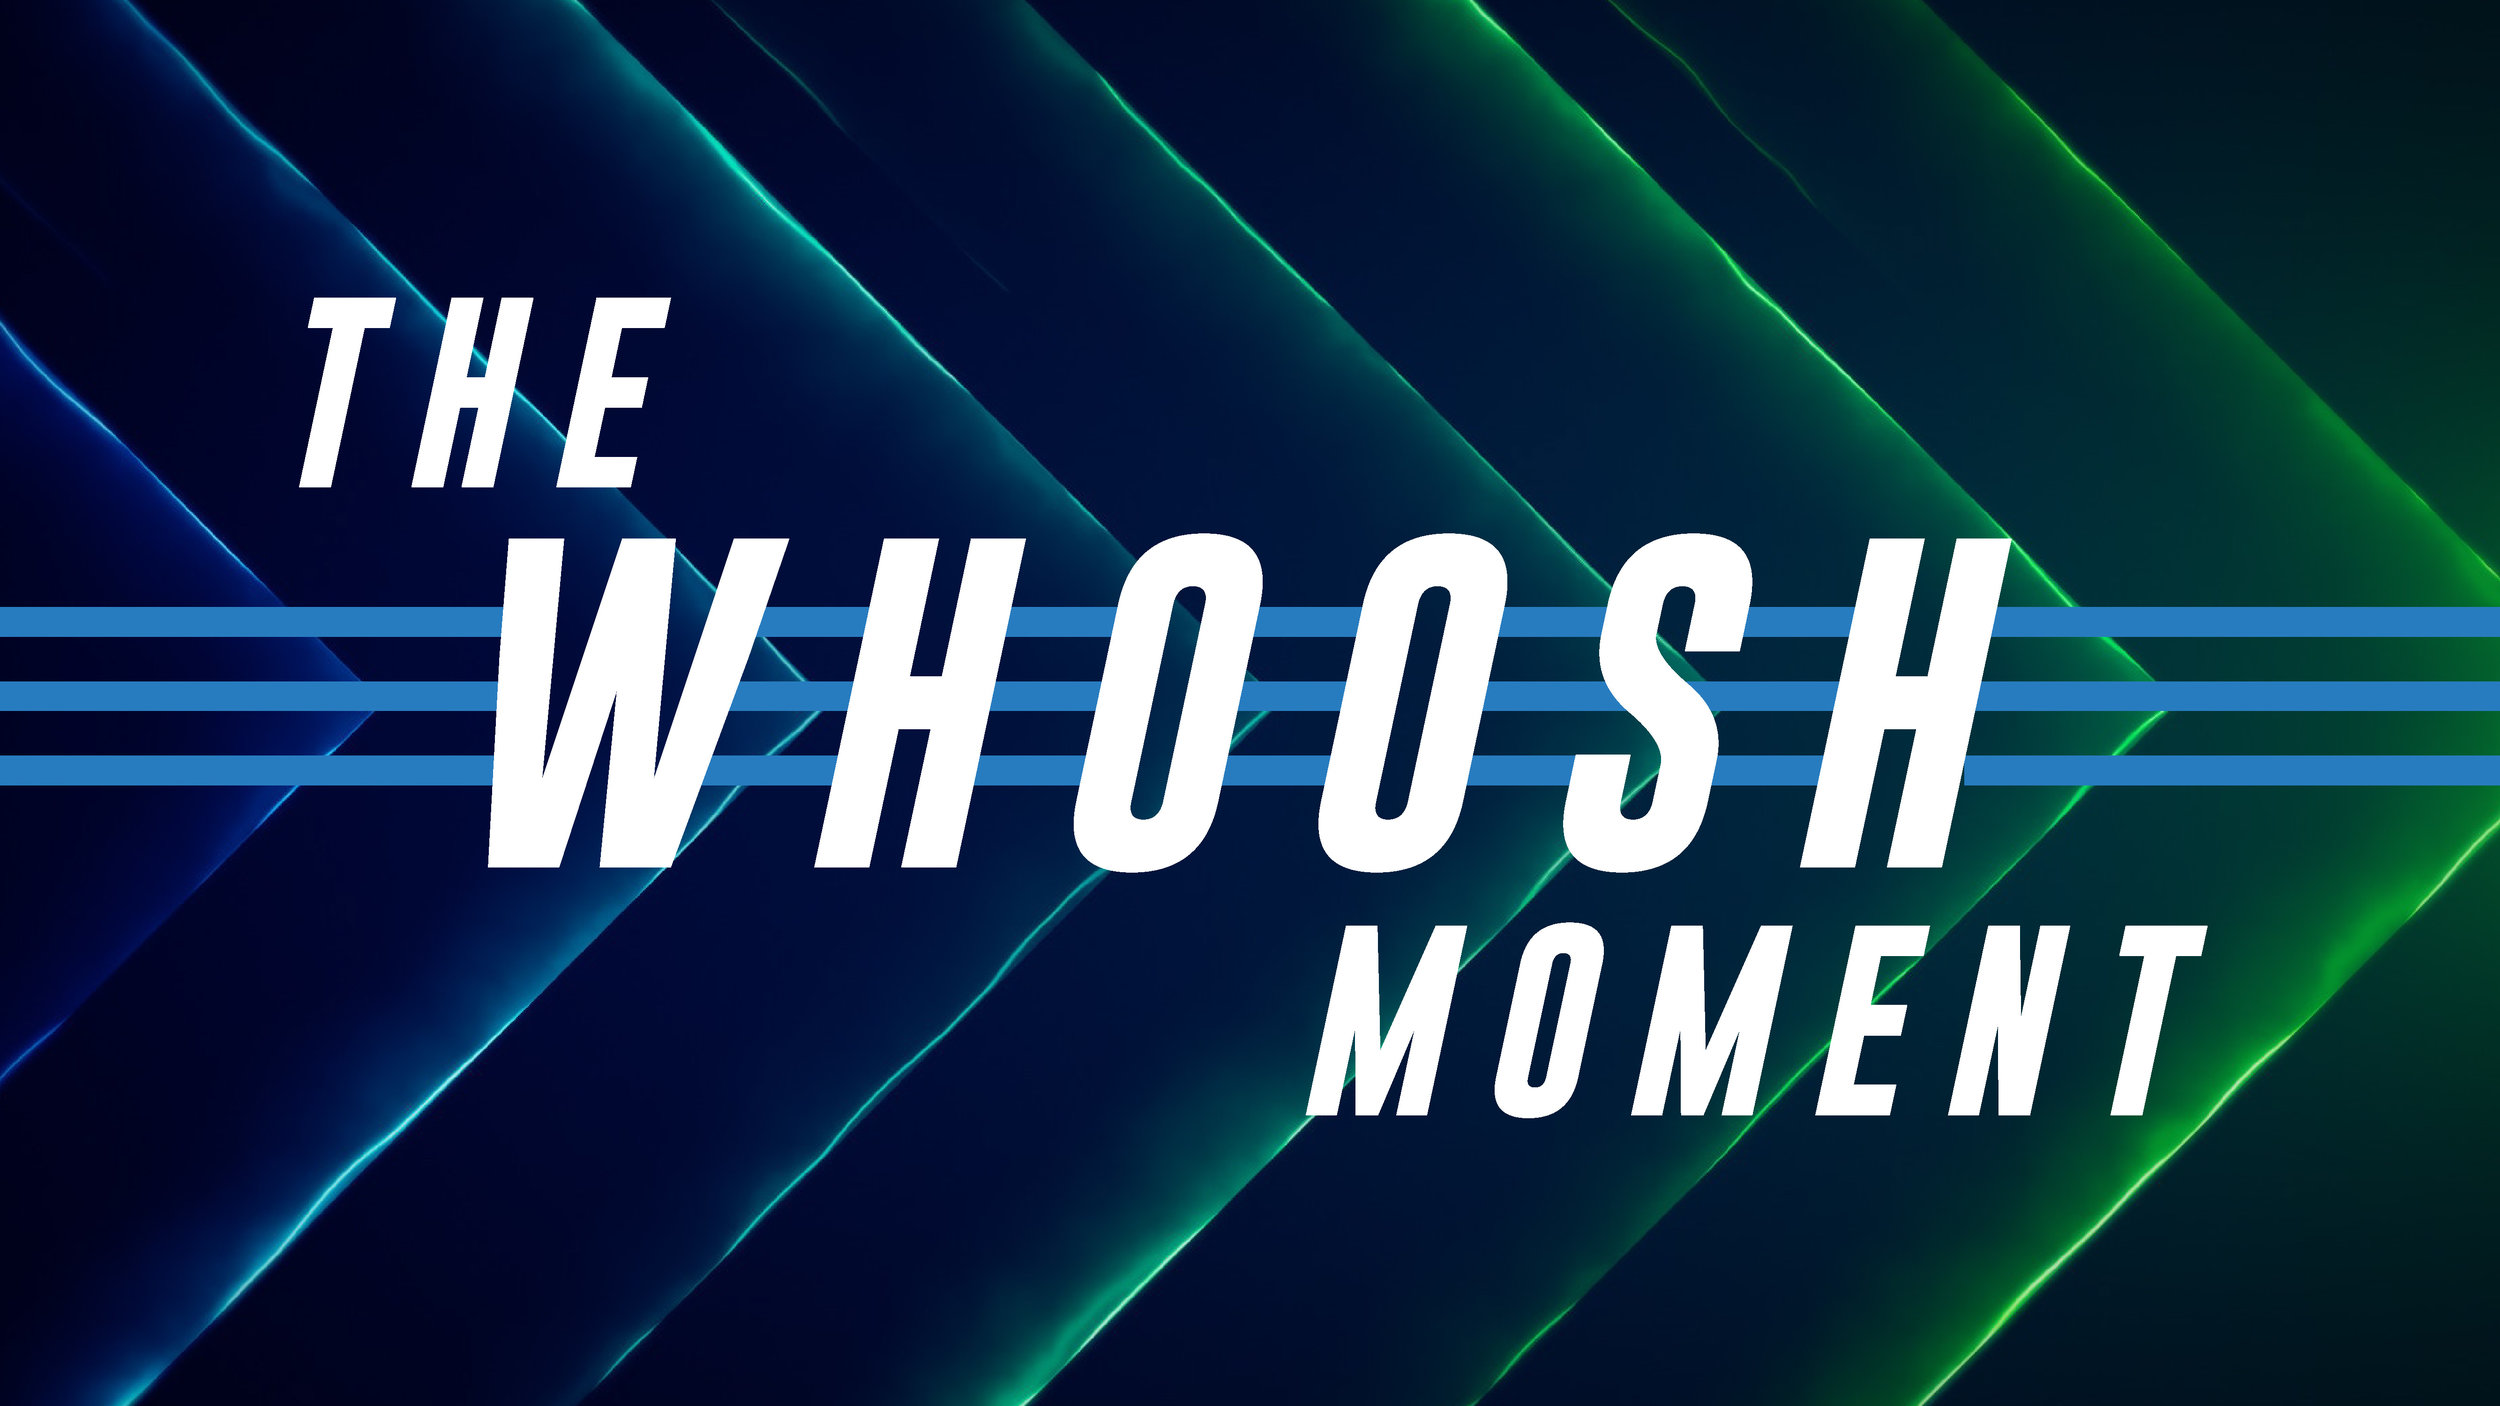 The Whoosh Moment_Title Slide 04-14-19-01.jpg